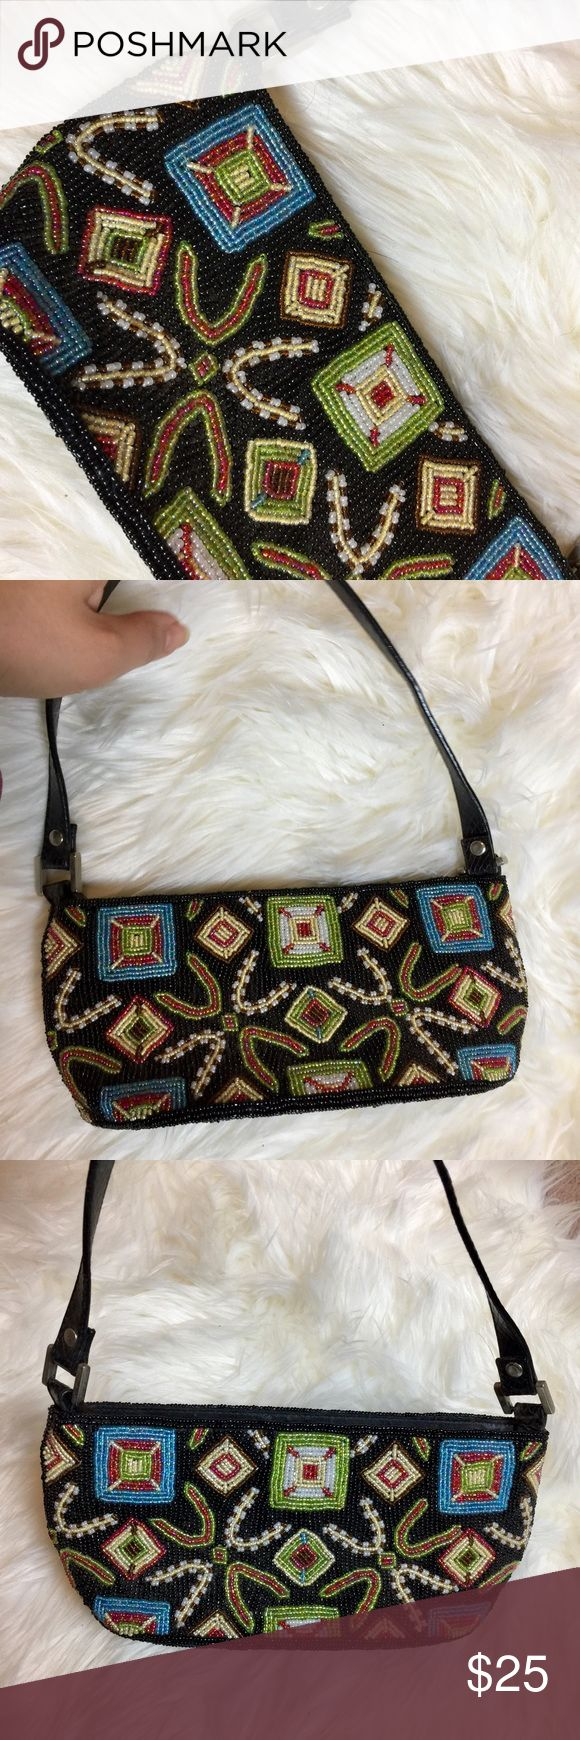 "Vintage beaded small purse from New Coast In great condition. Small vintage fully beaded purse. 10x4 with 8"" drop Vintage Bags Mini Bags"